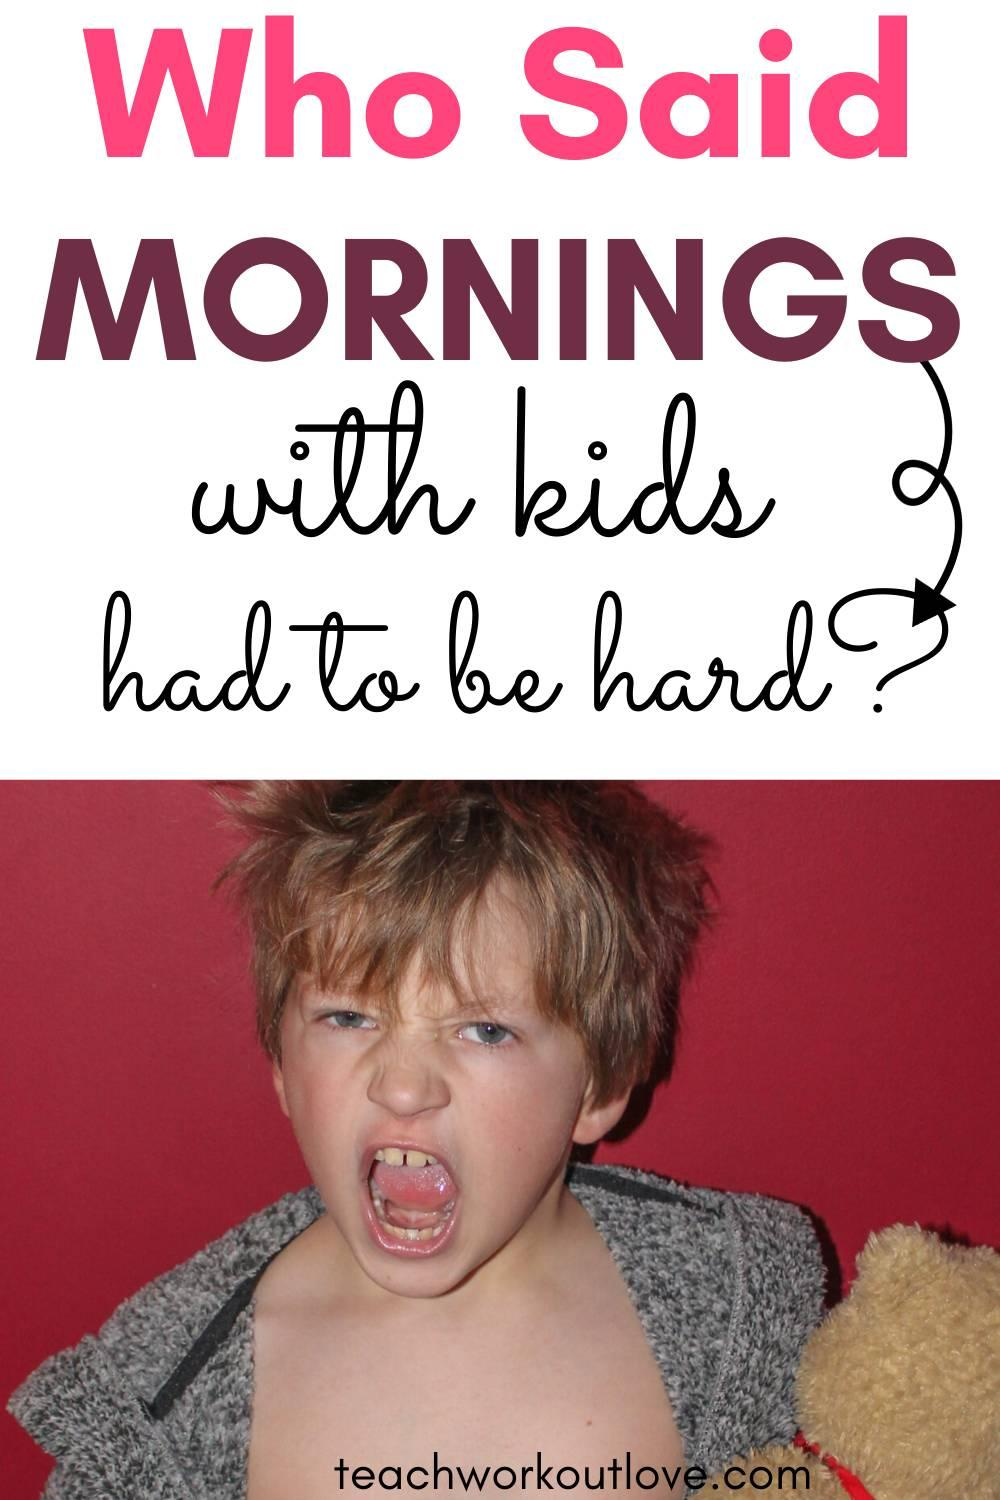 Mornings with kids can be TOUGH! We know that and want to help you figure out the best way to deal with it to make it super simple!